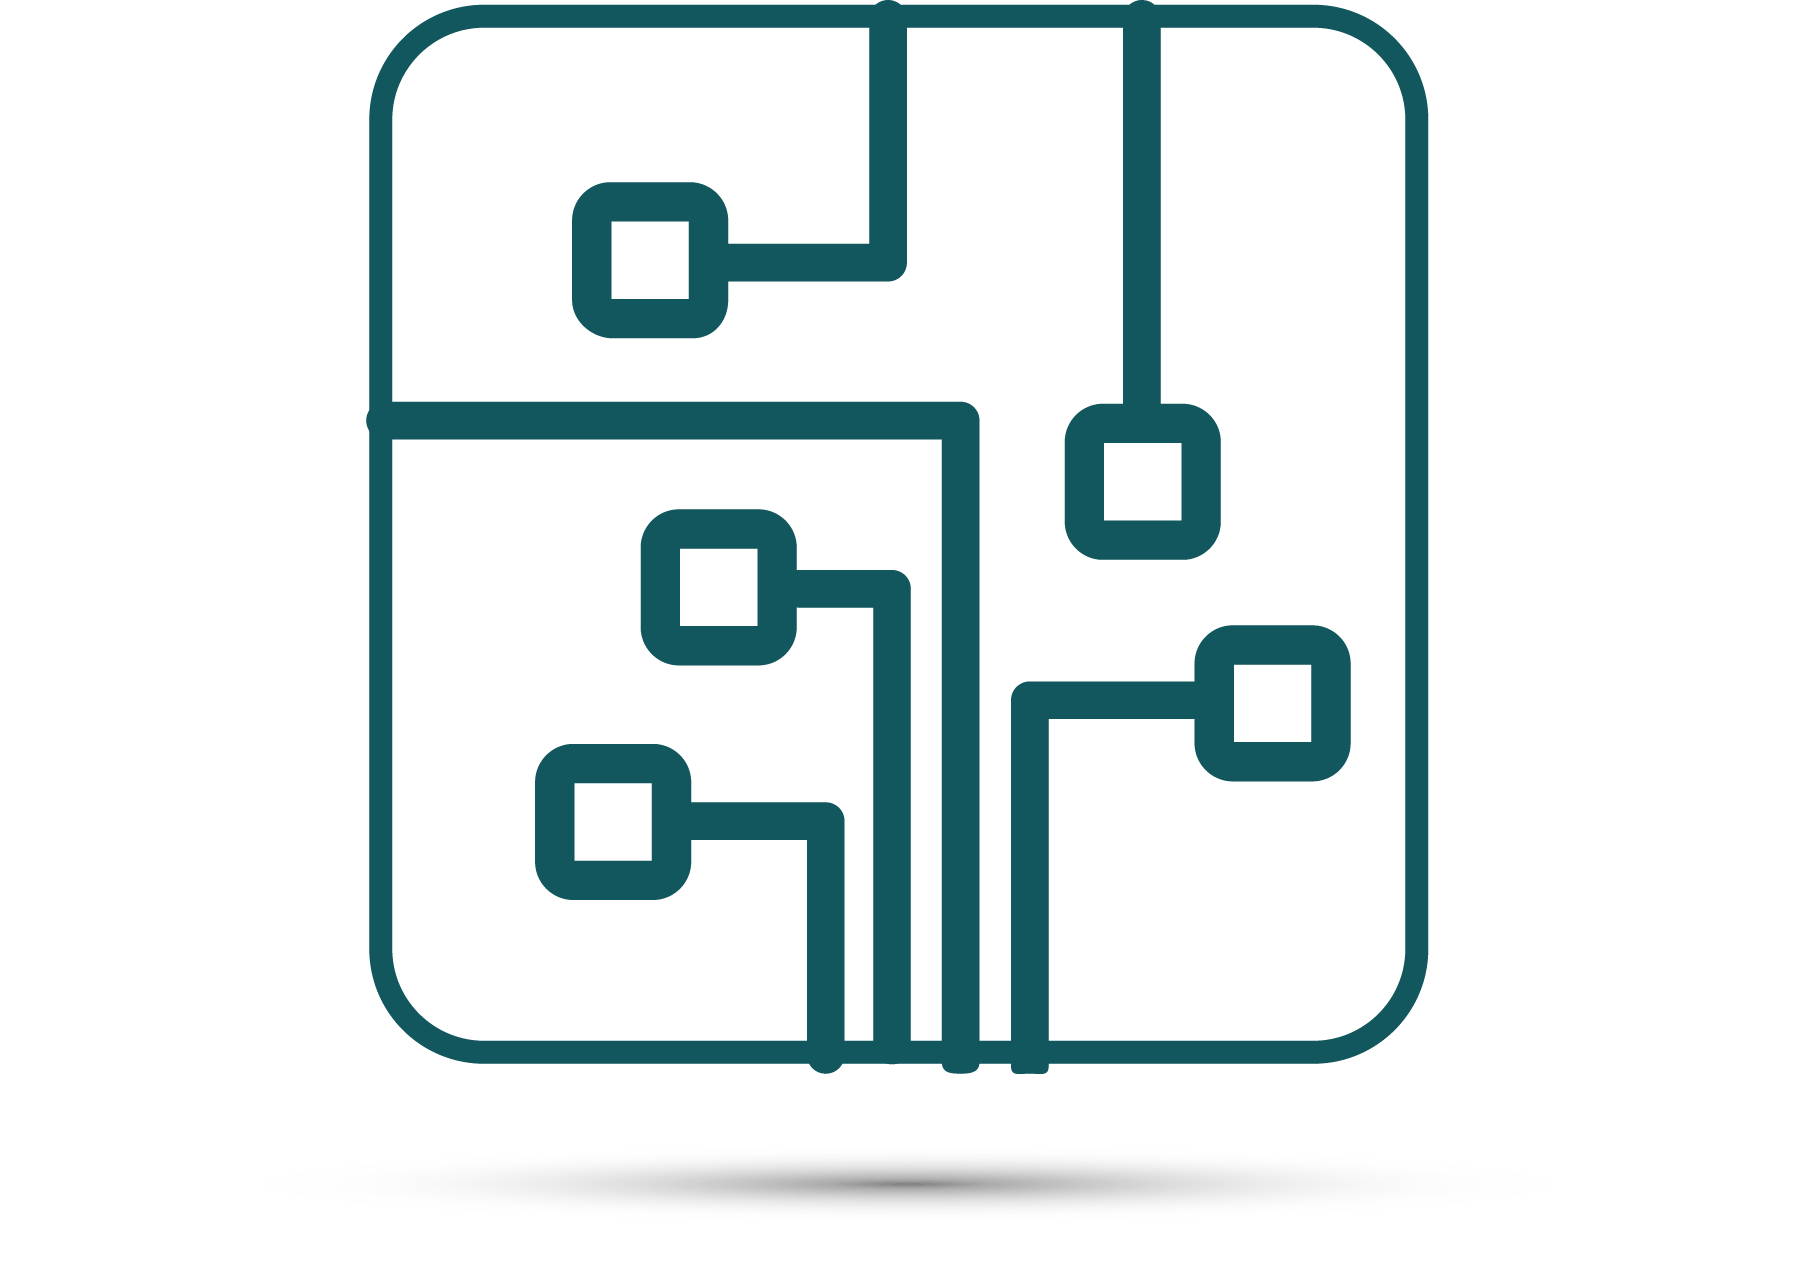 hight resolution of free circuit board png logo integrated printed electronic